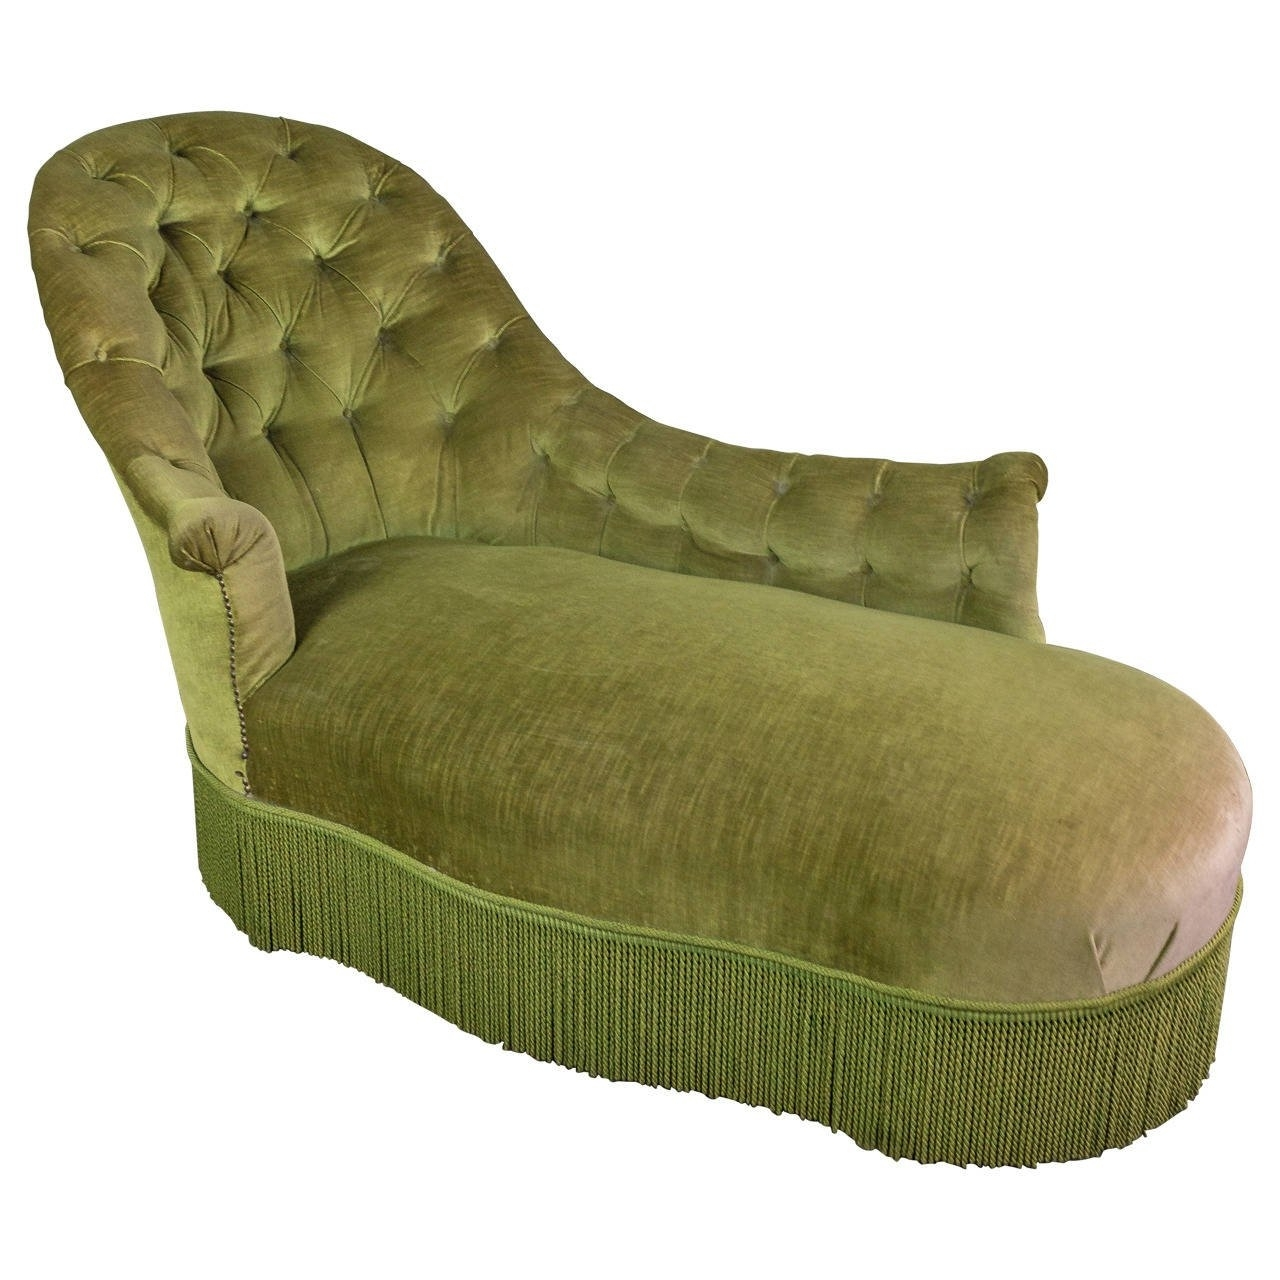 Green Chaises Within Well Known Tufted Asymmetrical Green Chaise Longue For Sale At 1Stdibs (View 6 of 15)